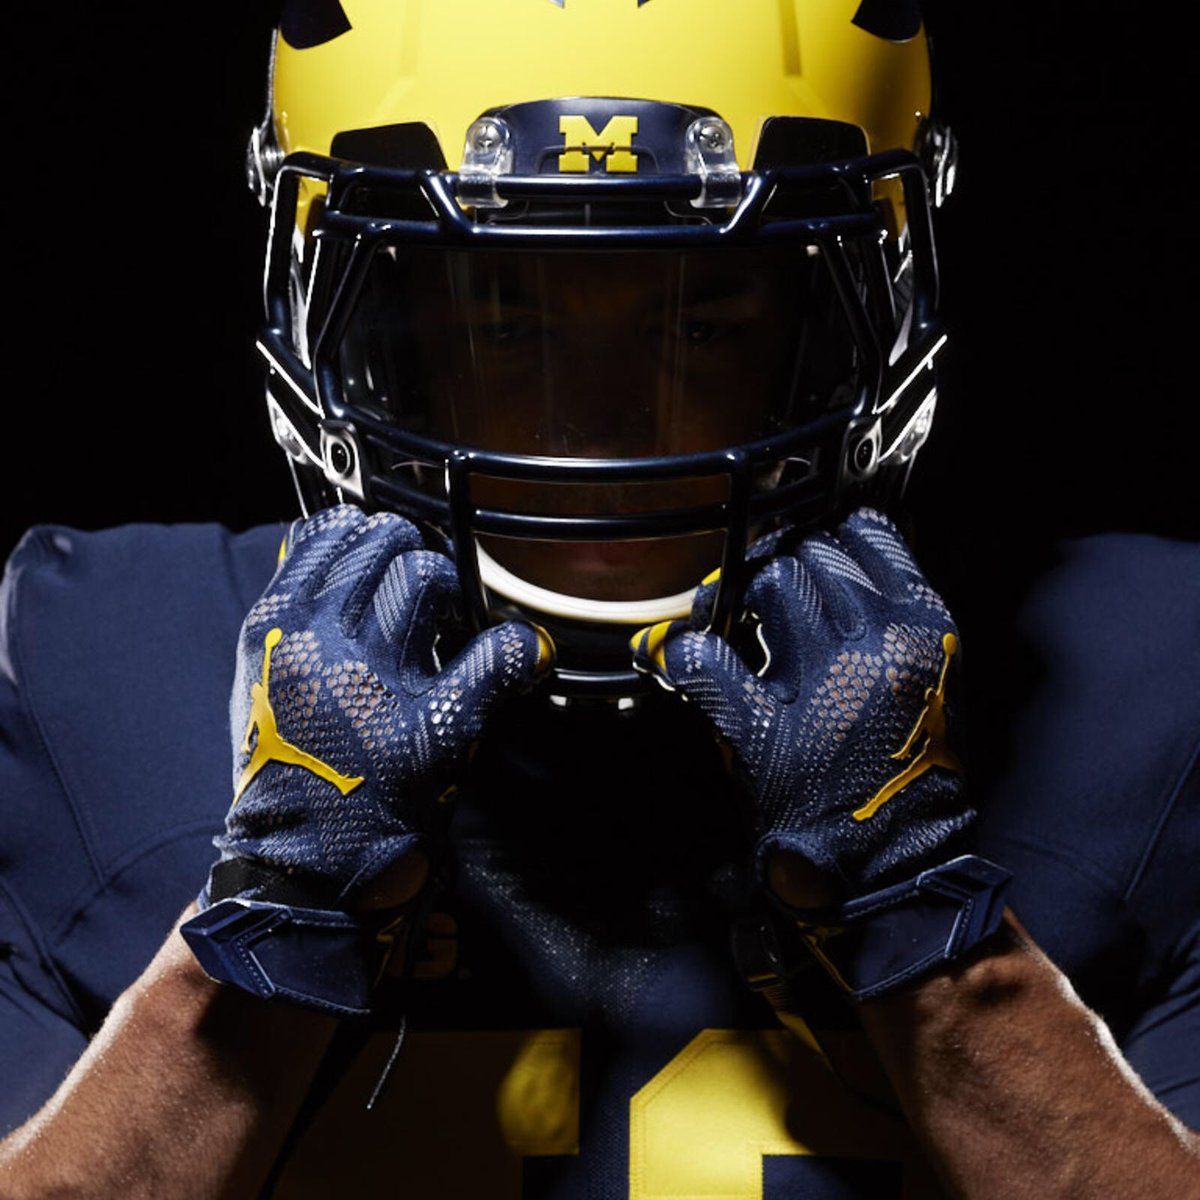 RT @garmonrandolph5: Truly blessed to receive an offer from the University of Michigan 〽️!!! https://t.co/SLTcOTkW8X